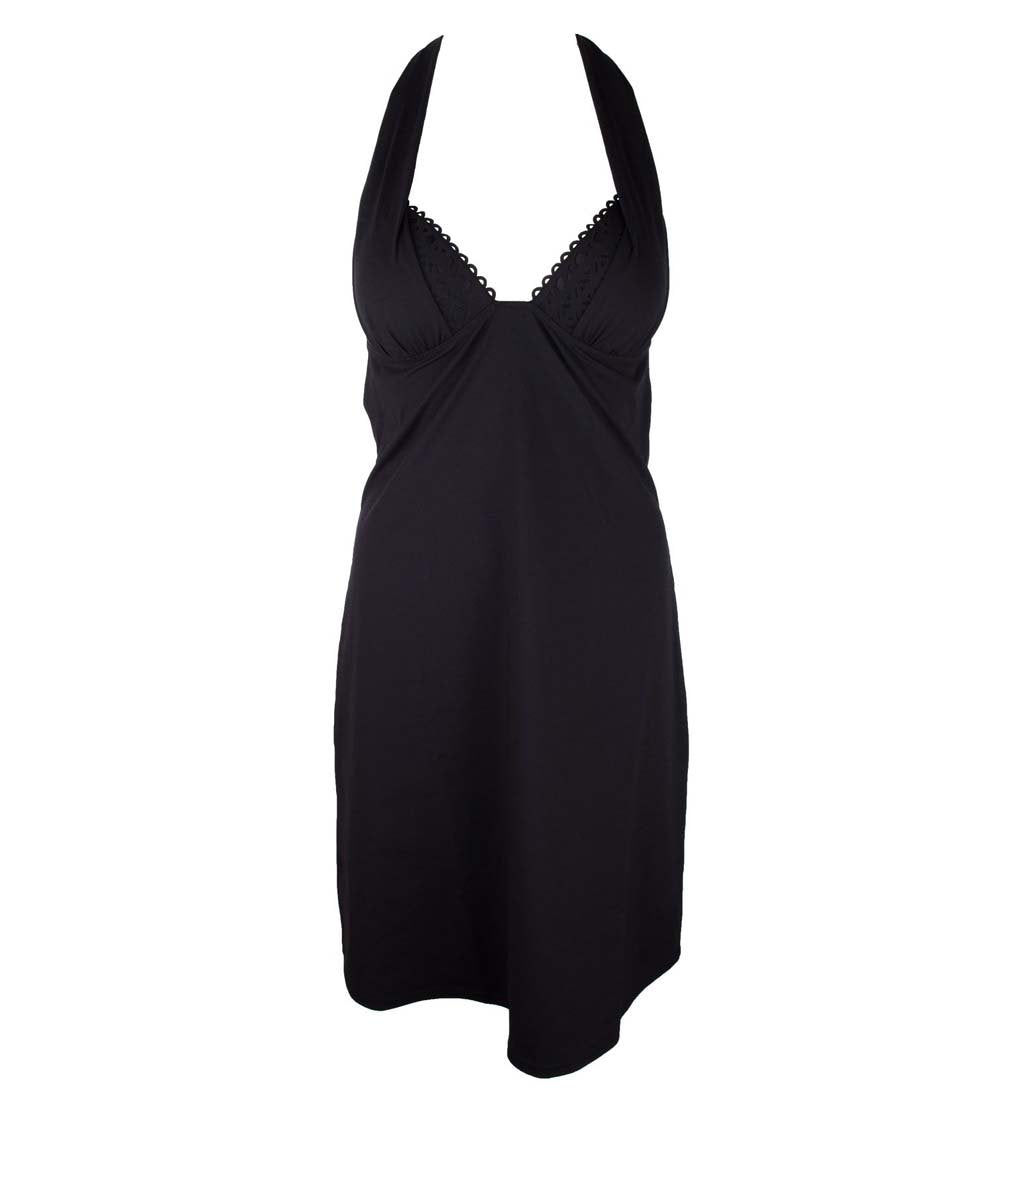 Lise Charmel 'Ajourage Couture' (Black) Dress - Sandra Dee - Product Shot - Front